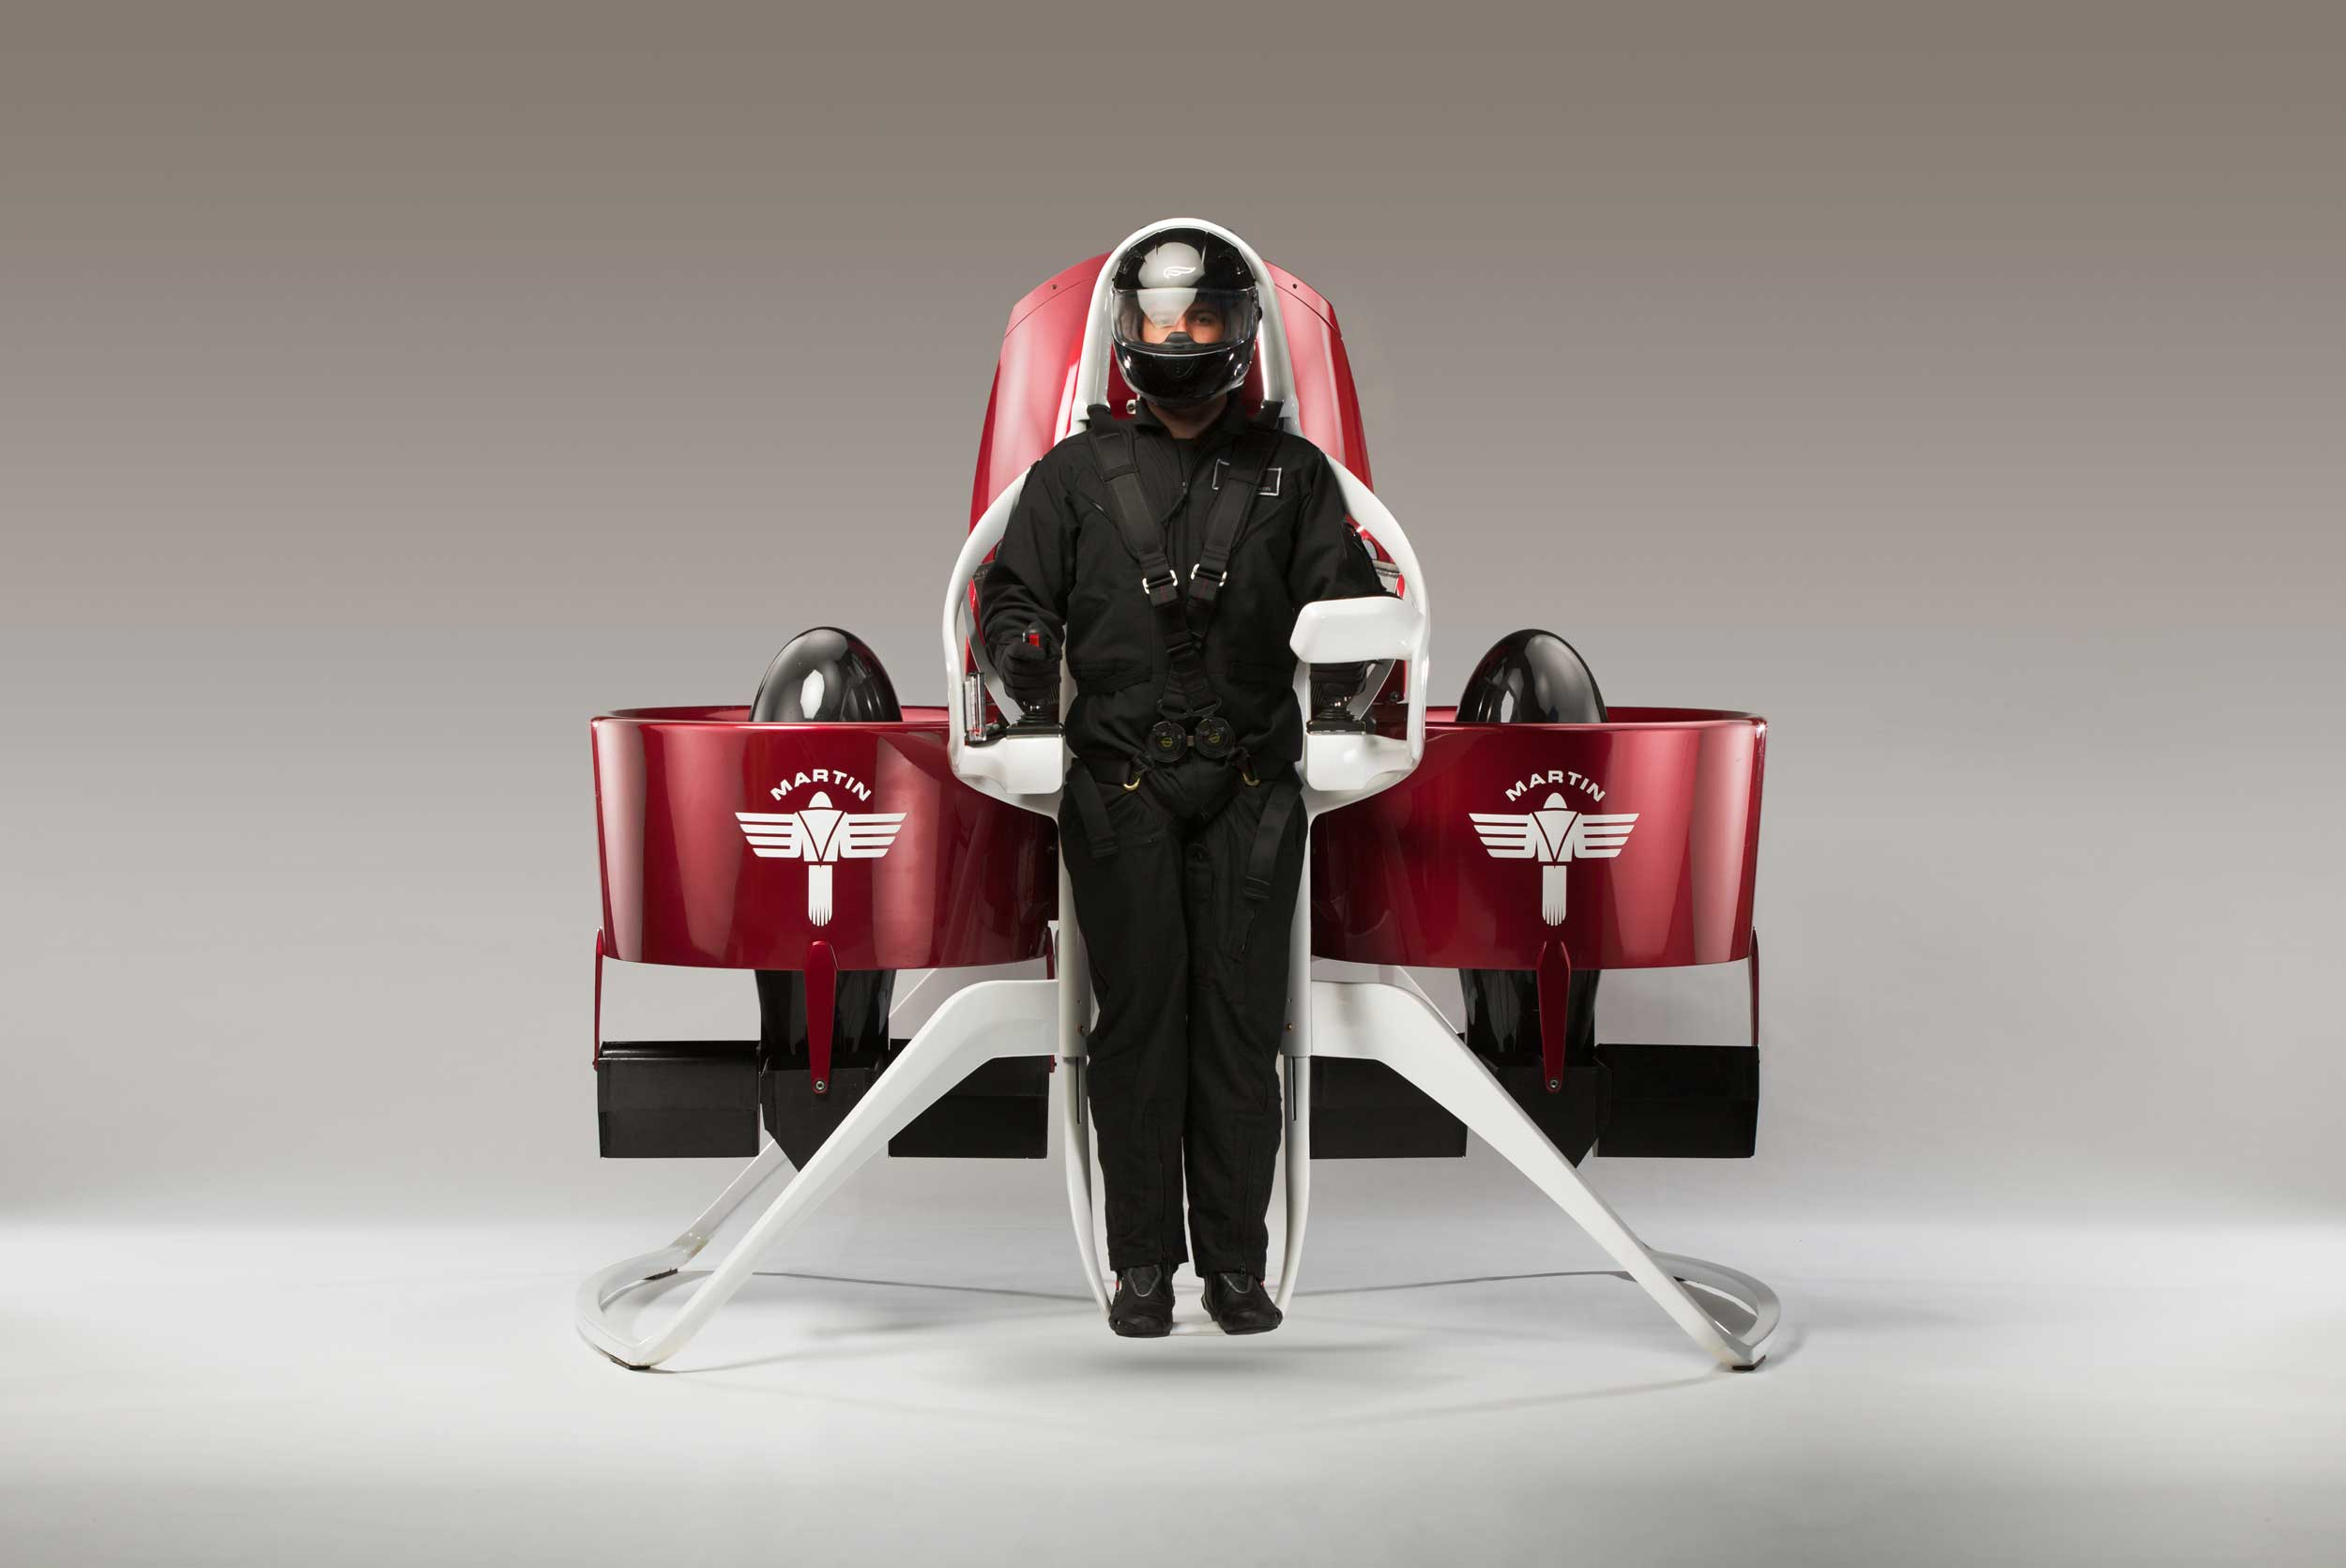 Man strapped to a Martin jet pack